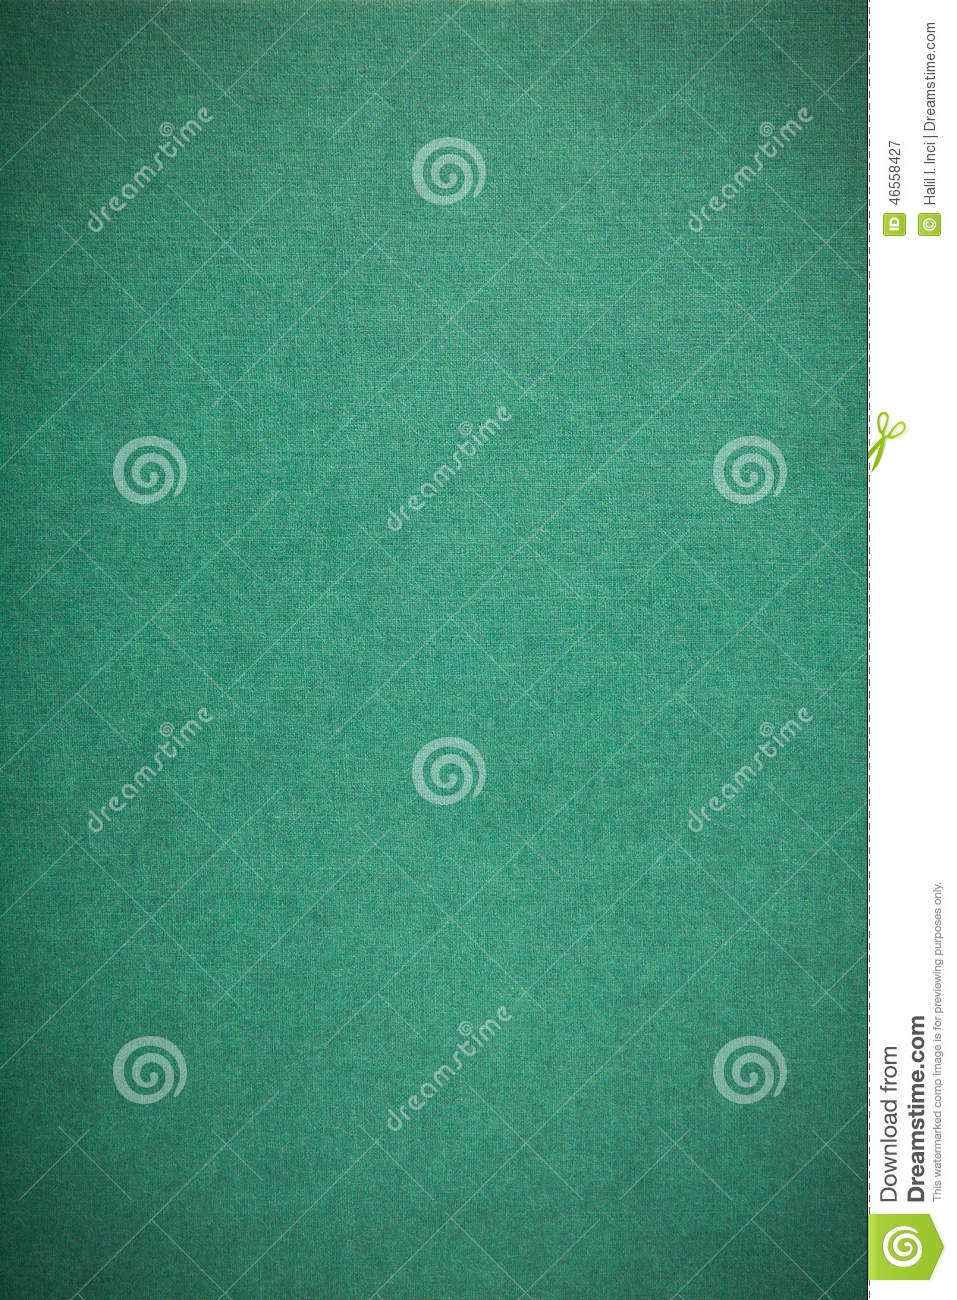 Book Cover Background Java : Canvas book cover texture stock photo image